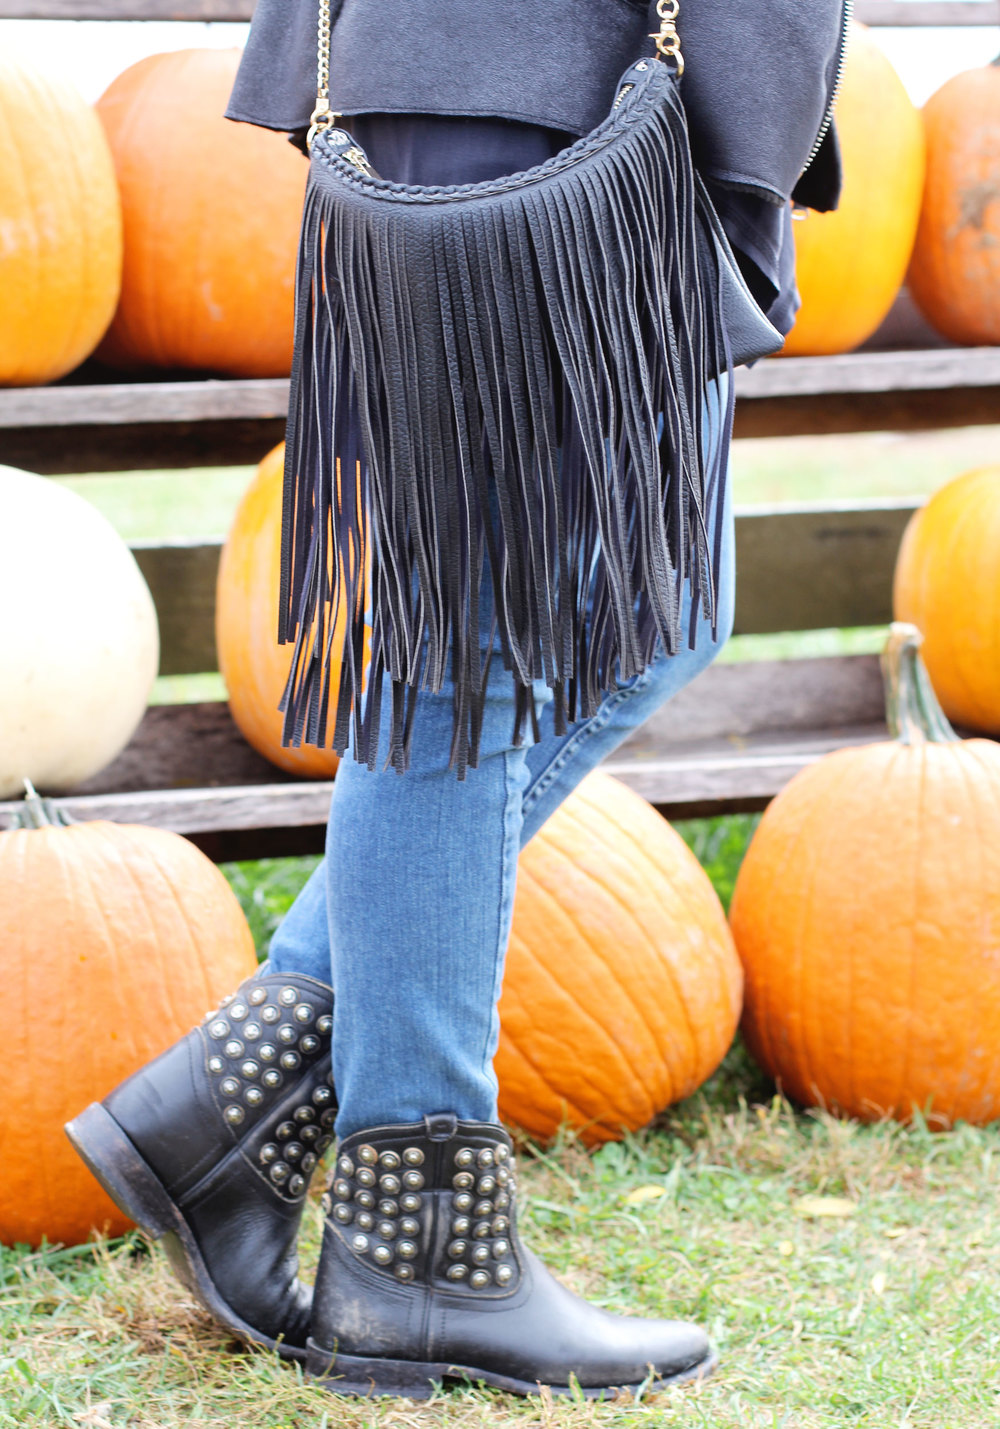 Fall Fashion Layering, Bar III Faux Fur Moto Vest, Altard State Cowl Neck Top, Paige Verdugo Ankle Jean, Sole Society Fringe Crossbody Bag, FRYE Studded Boots